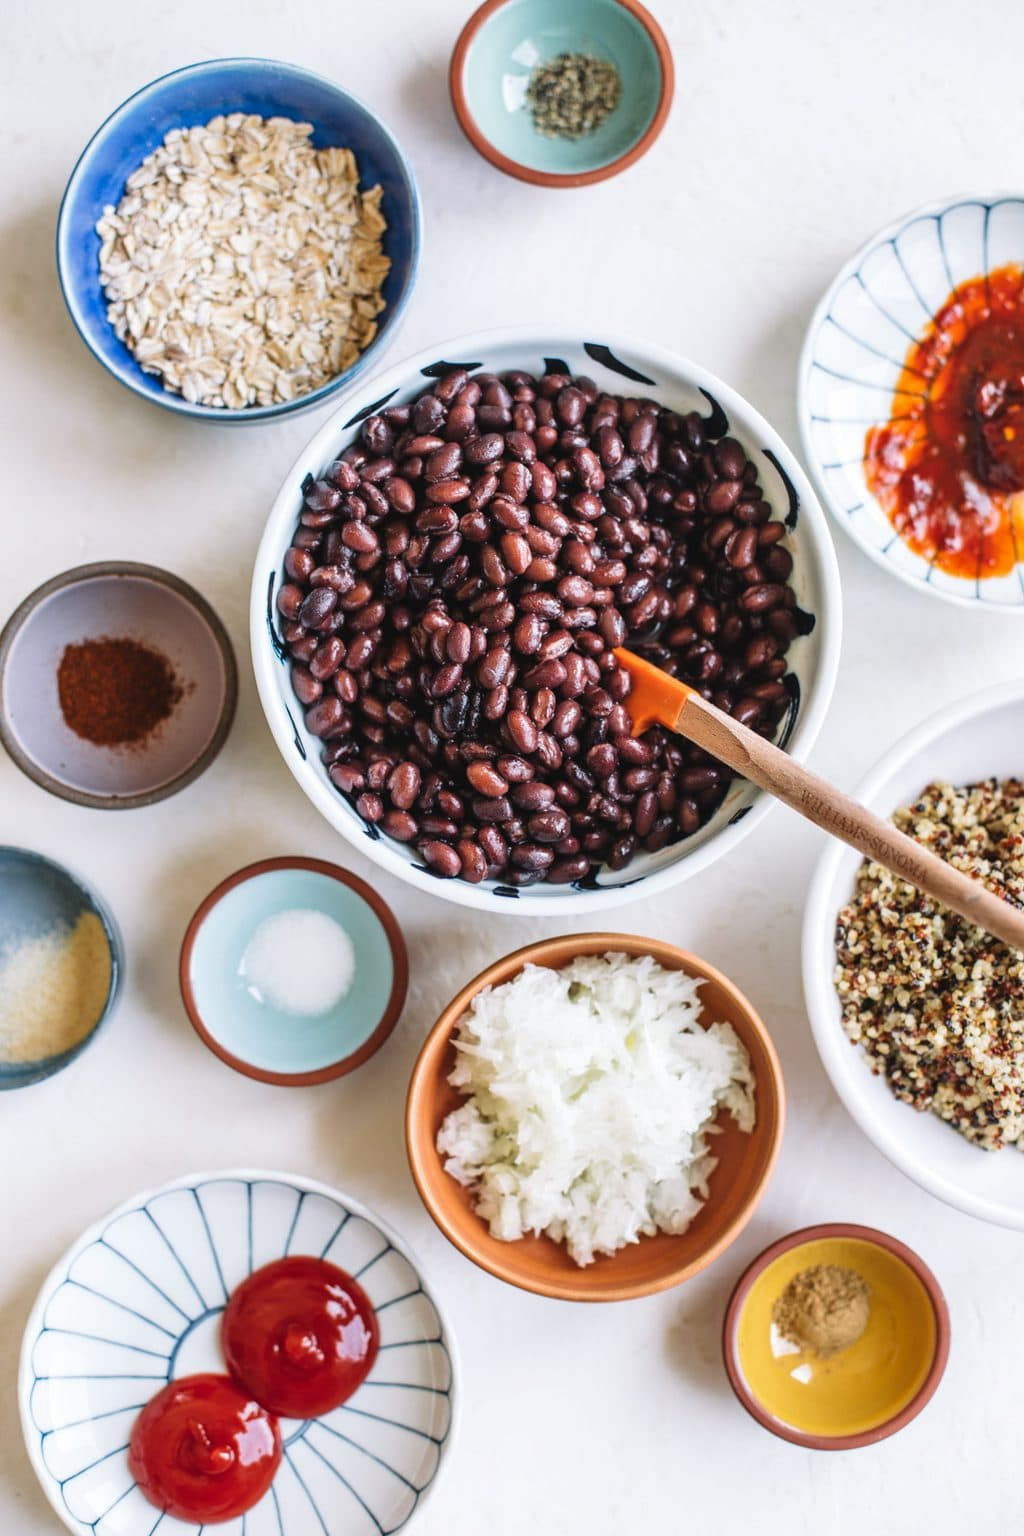 black beans, quinoa, oats, salt, chipotle, spices in bowls